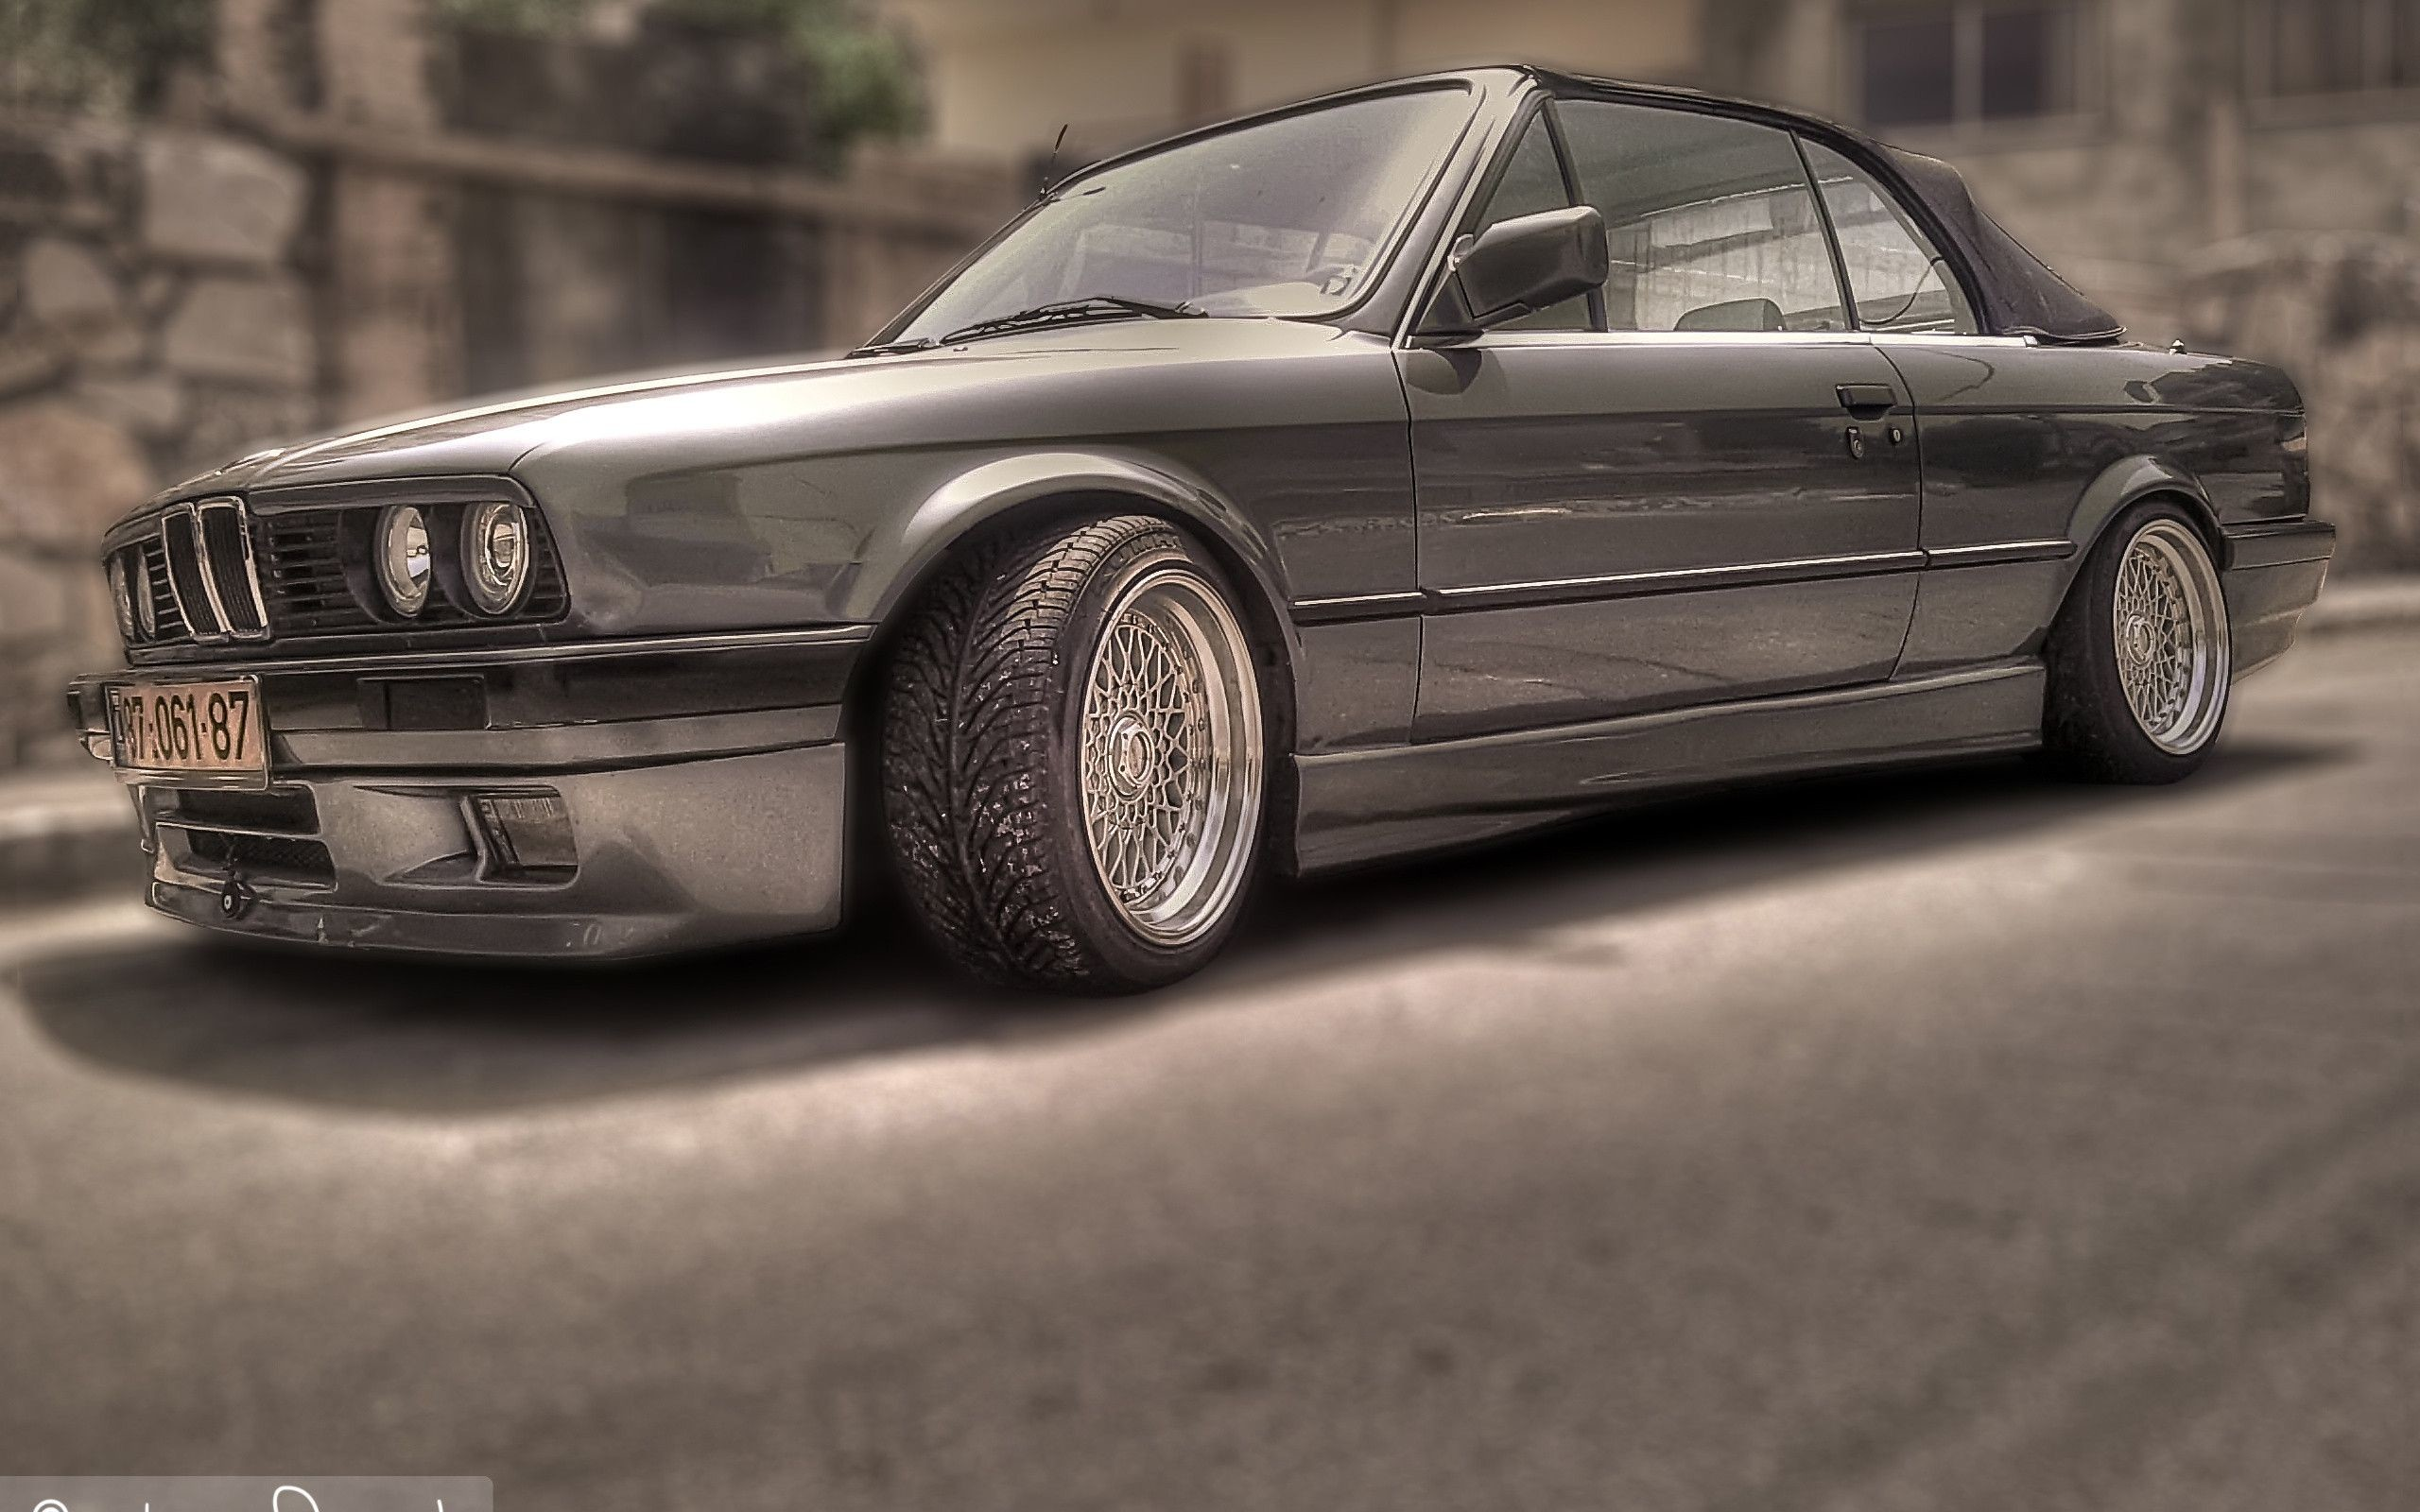 BMW E30 Wallpapers Wallpaper Cave Source · Images For Bmw E30 Wallpaper  Black